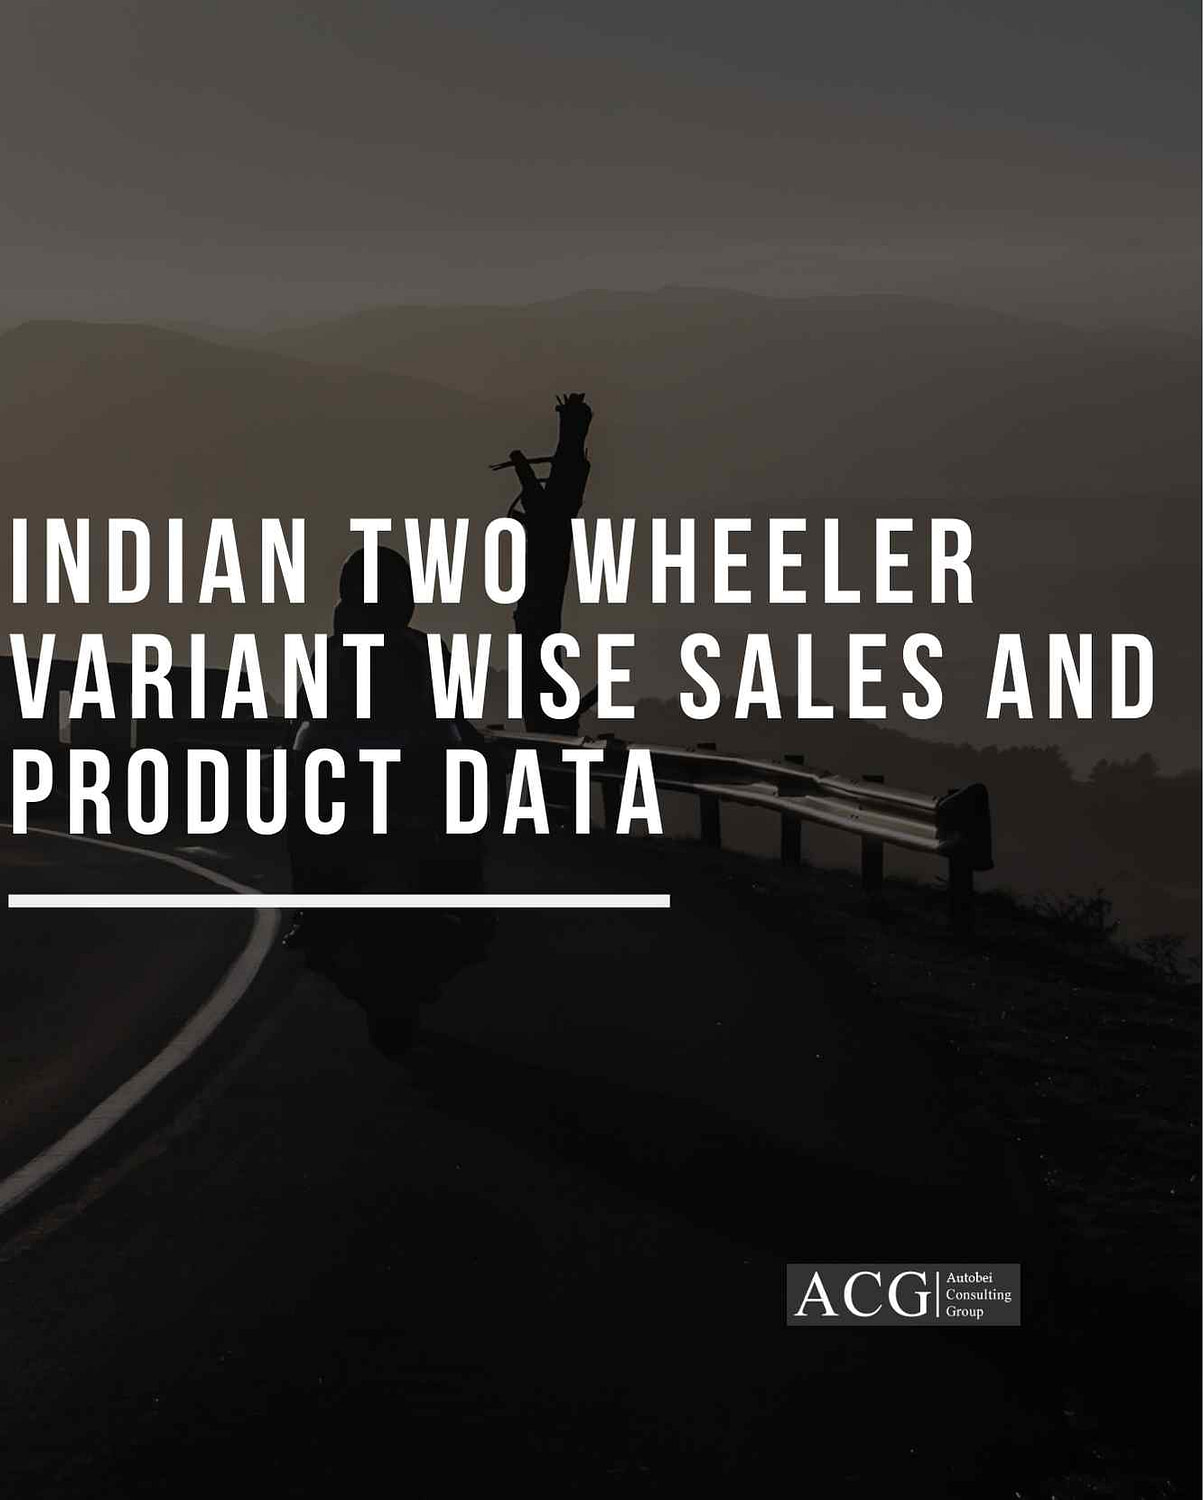 Indian Two Wheeler variant wise Sales and Product Data